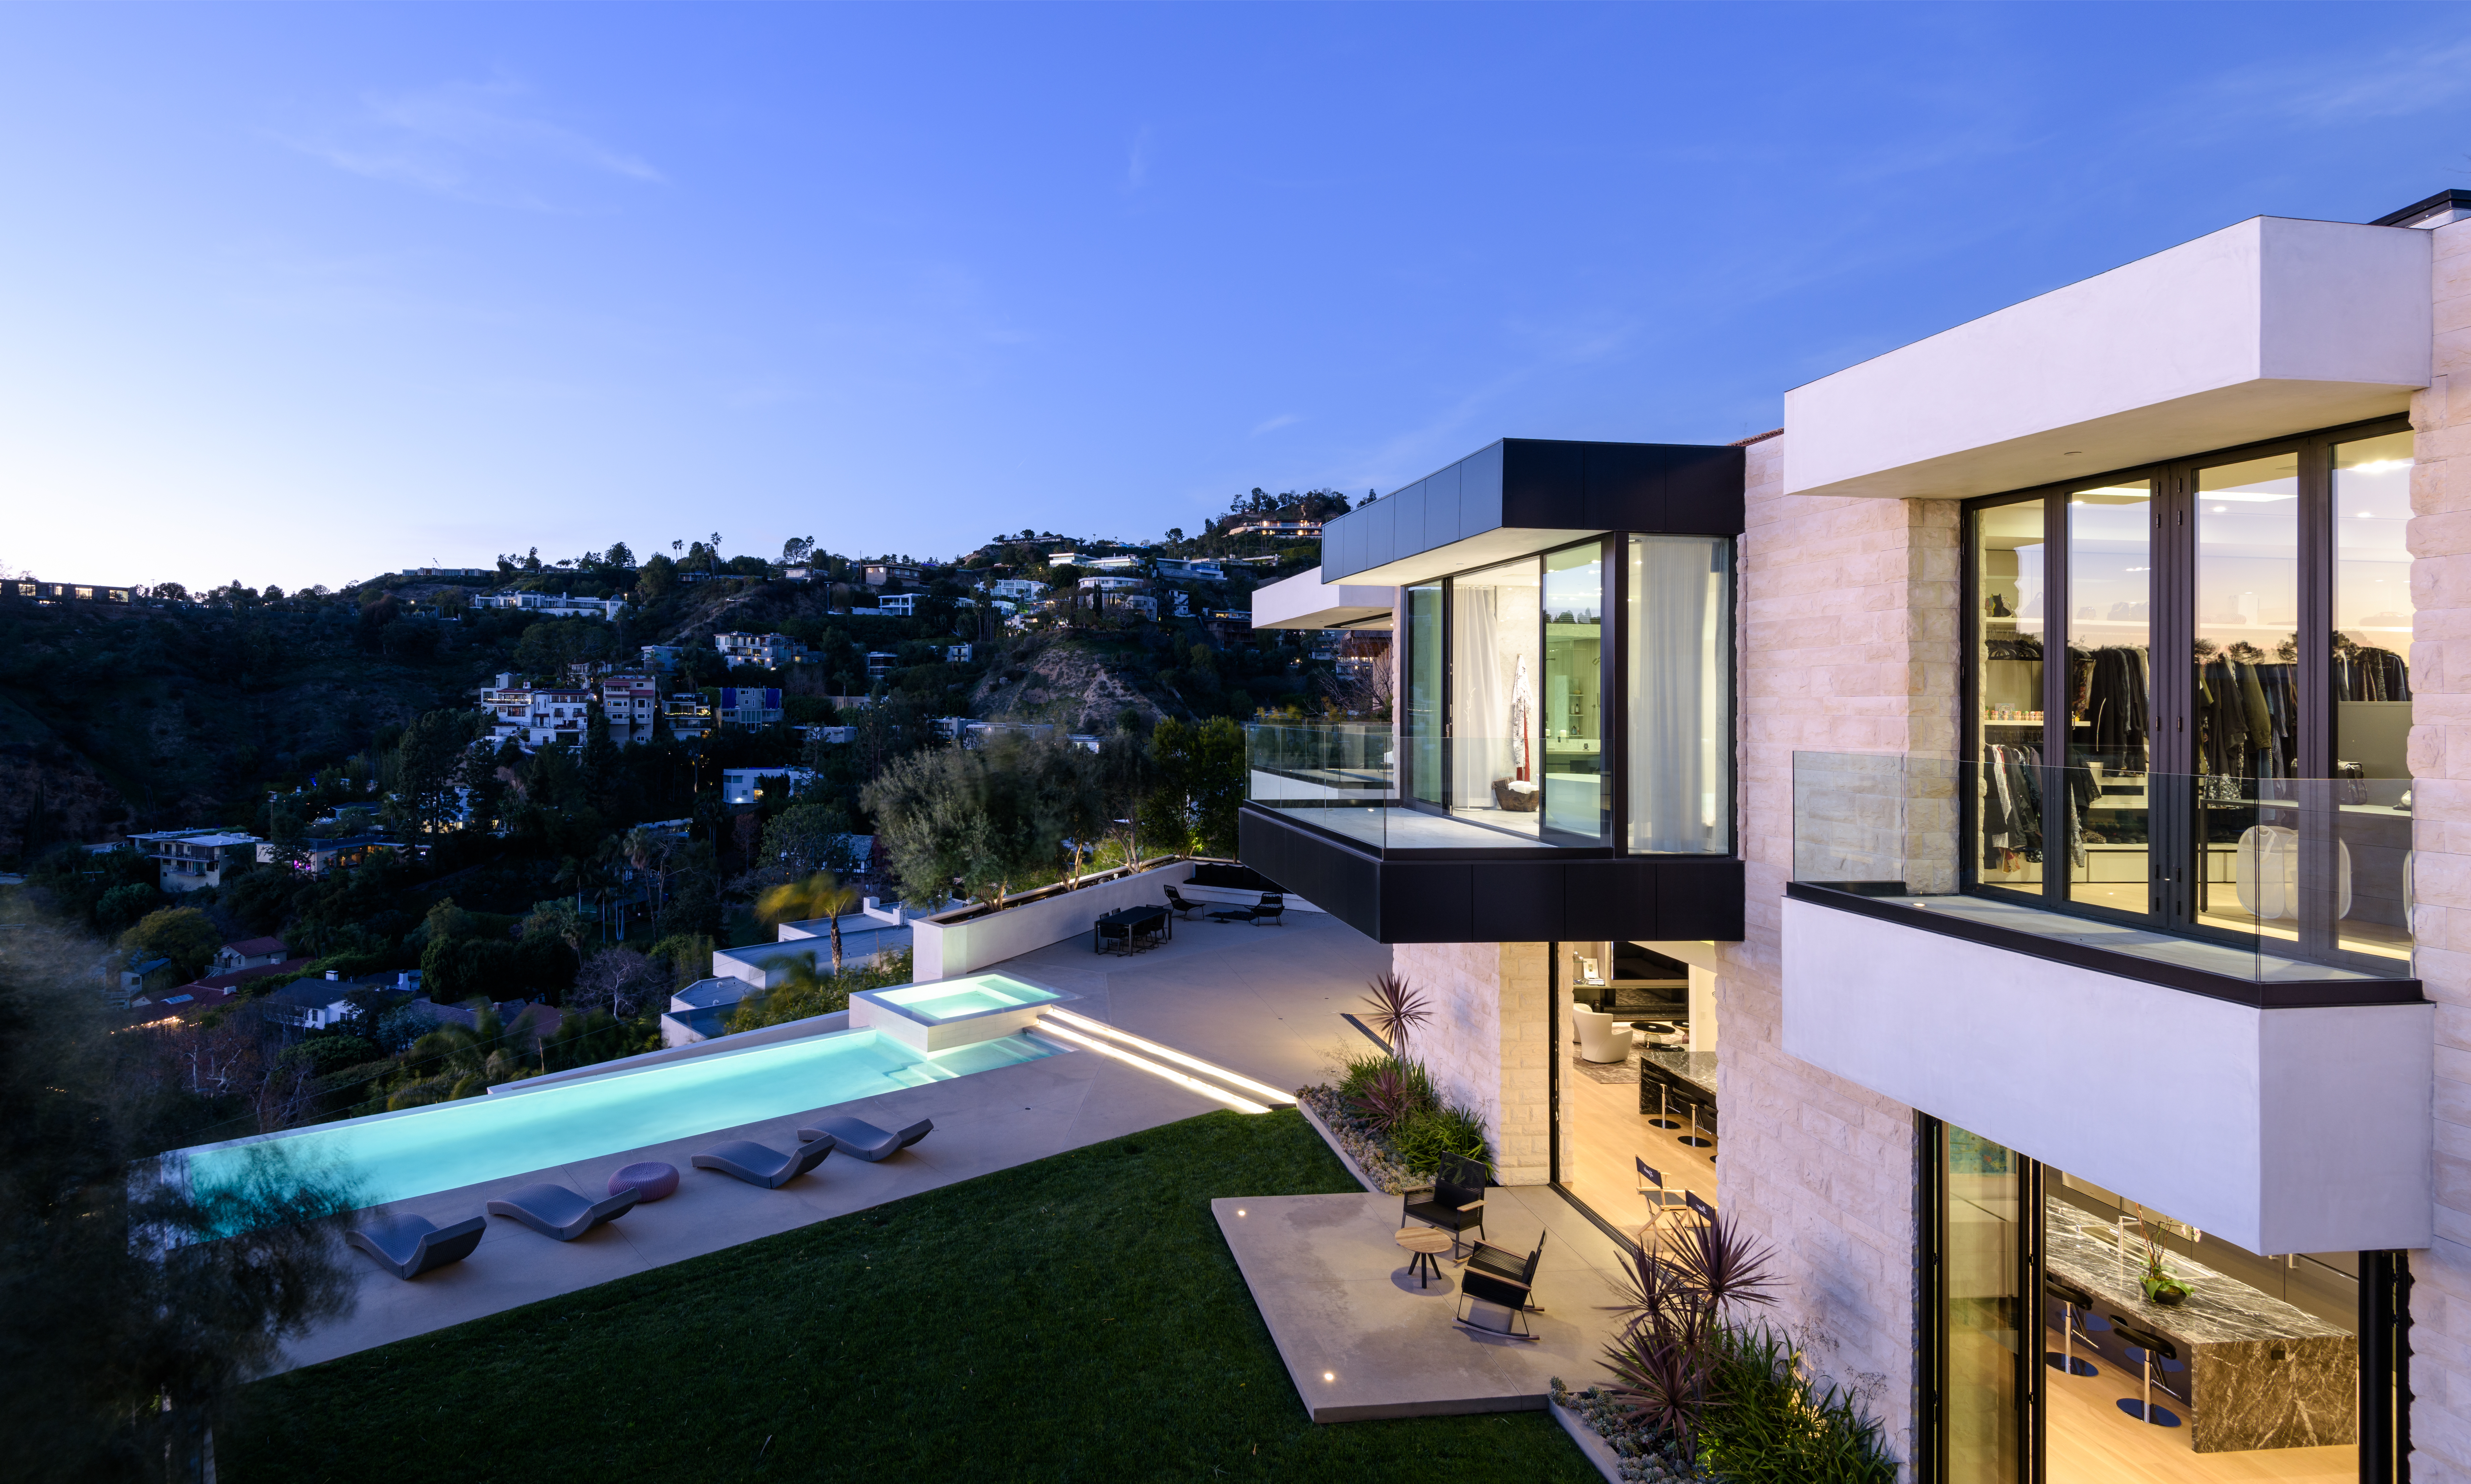 Russell Weiner paid $16.5 million for this L.A. home 2 weeks ago. He's now selling it for $28 million photo